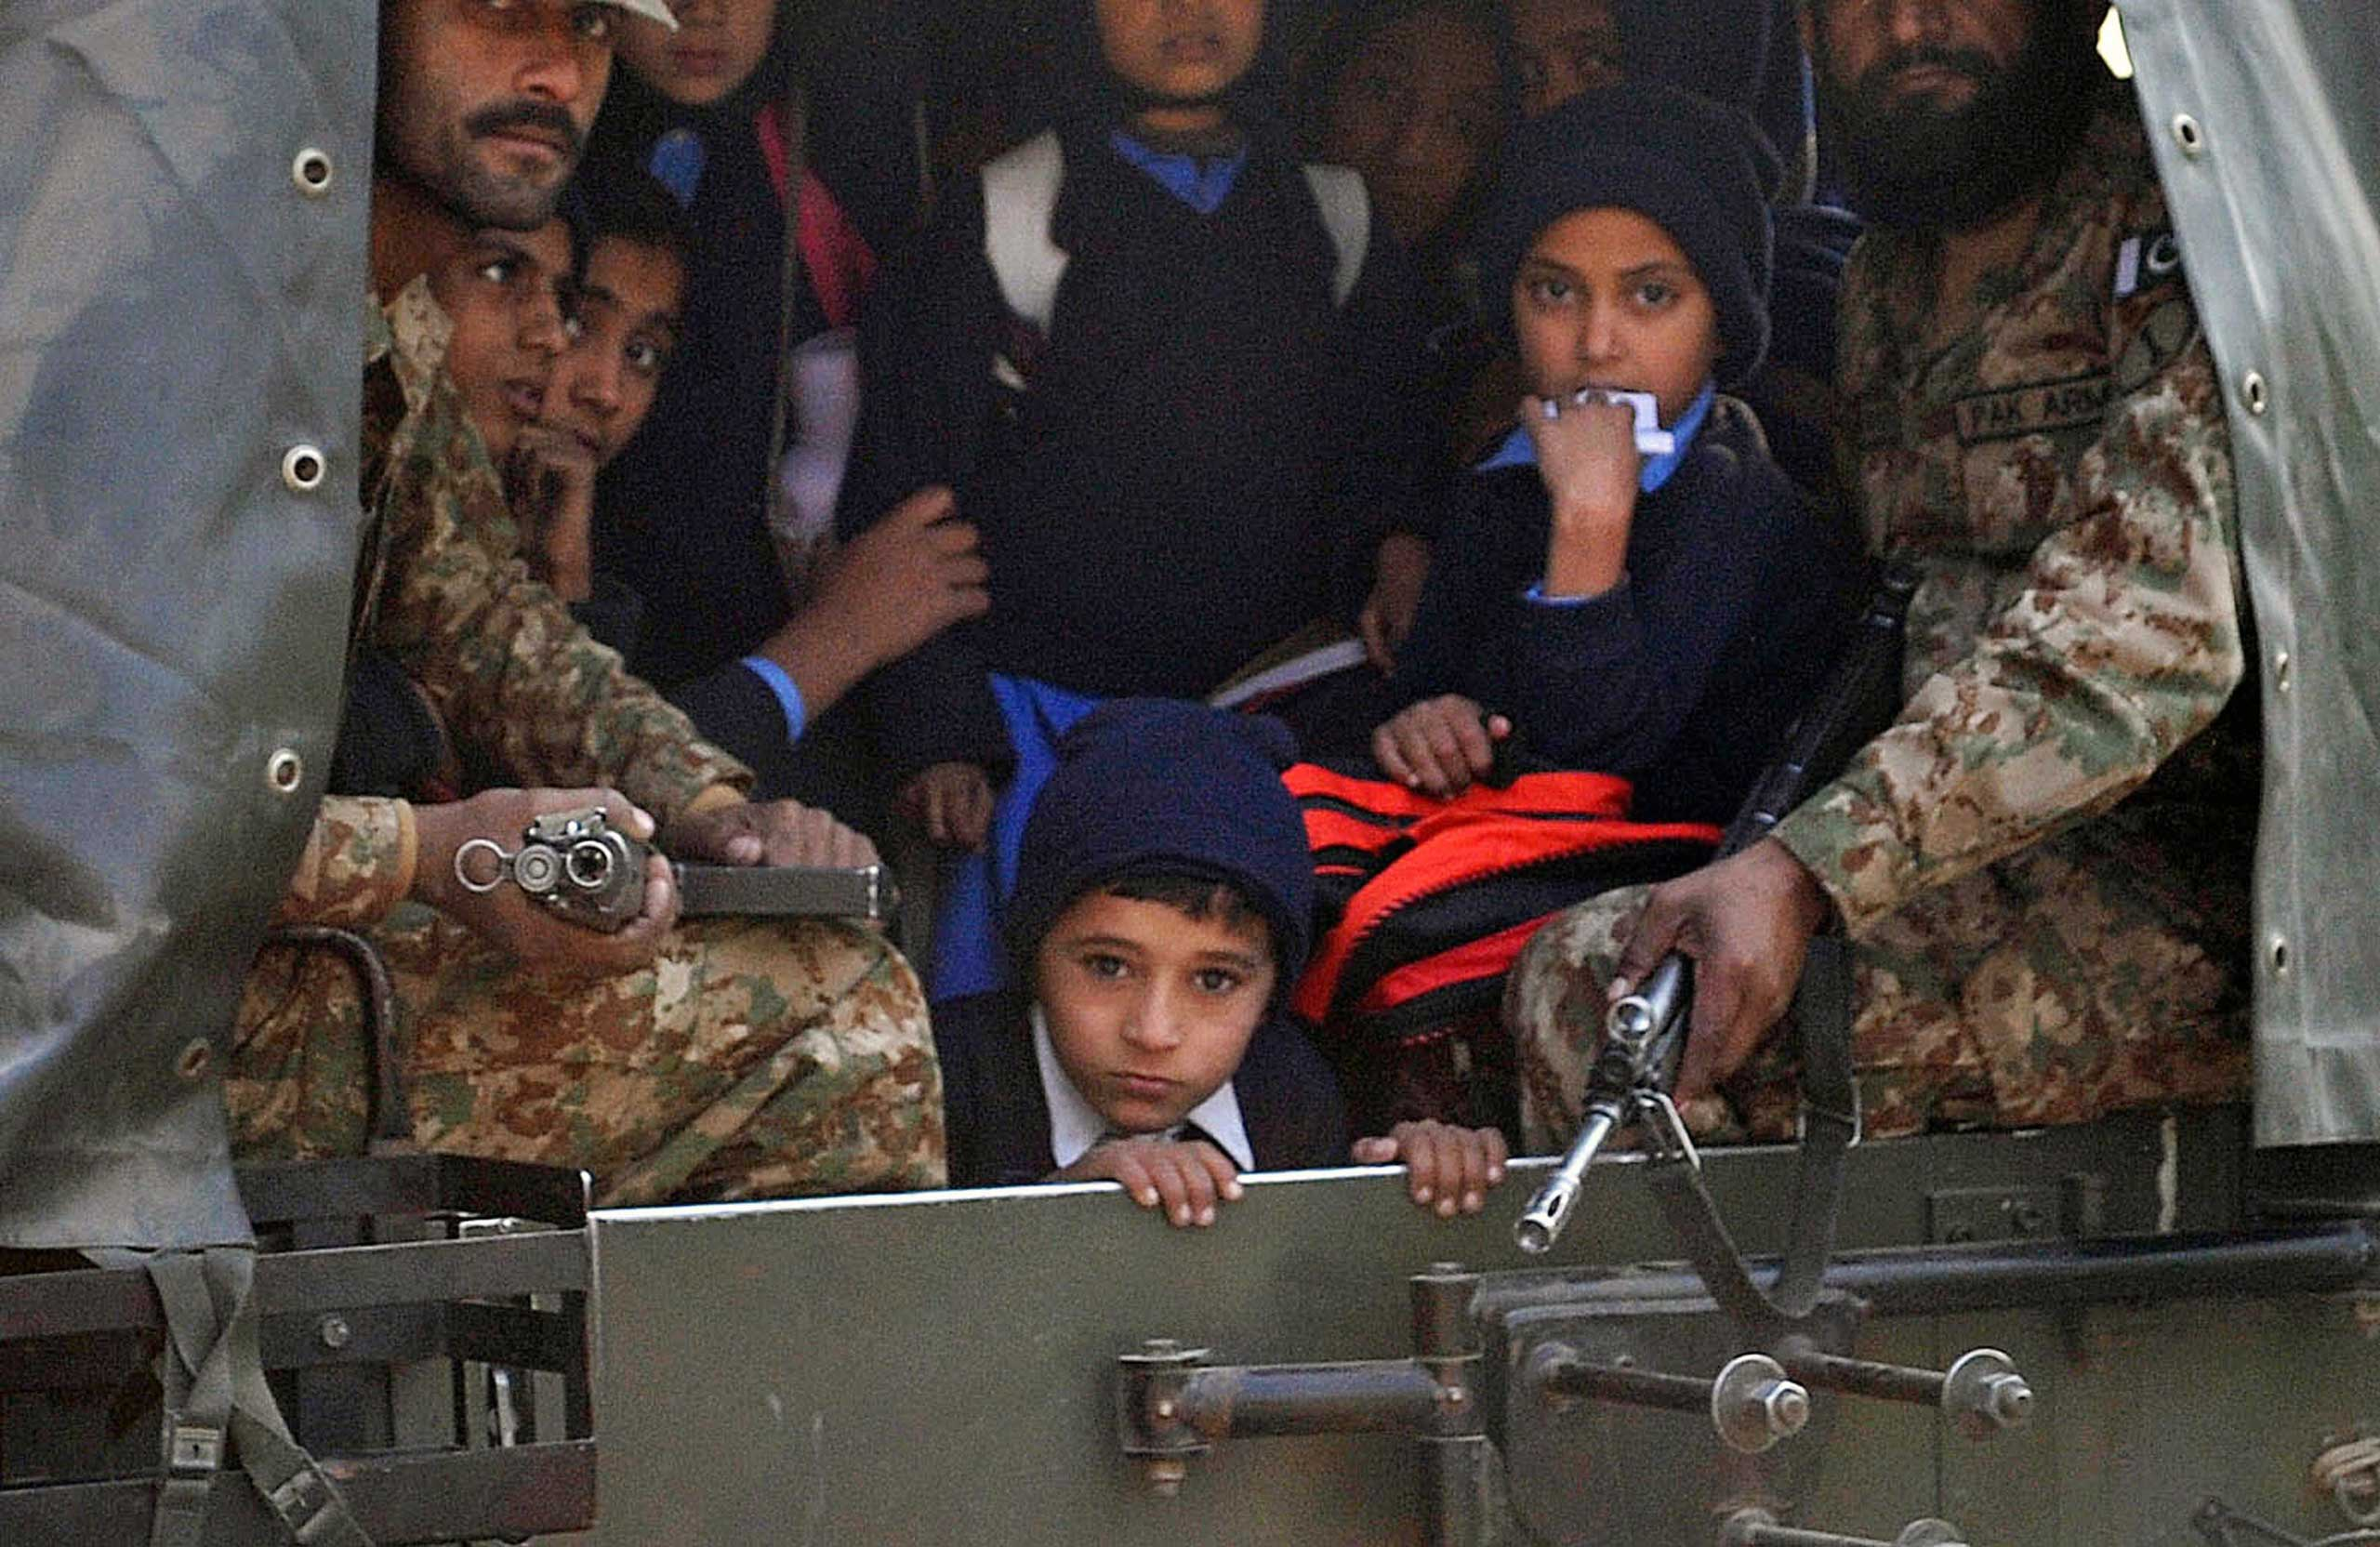 Pakistani soldiers transport rescued school children from the site of an attack by Taliban gunmen on a school in Peshawar on Dec. 16, 2014.